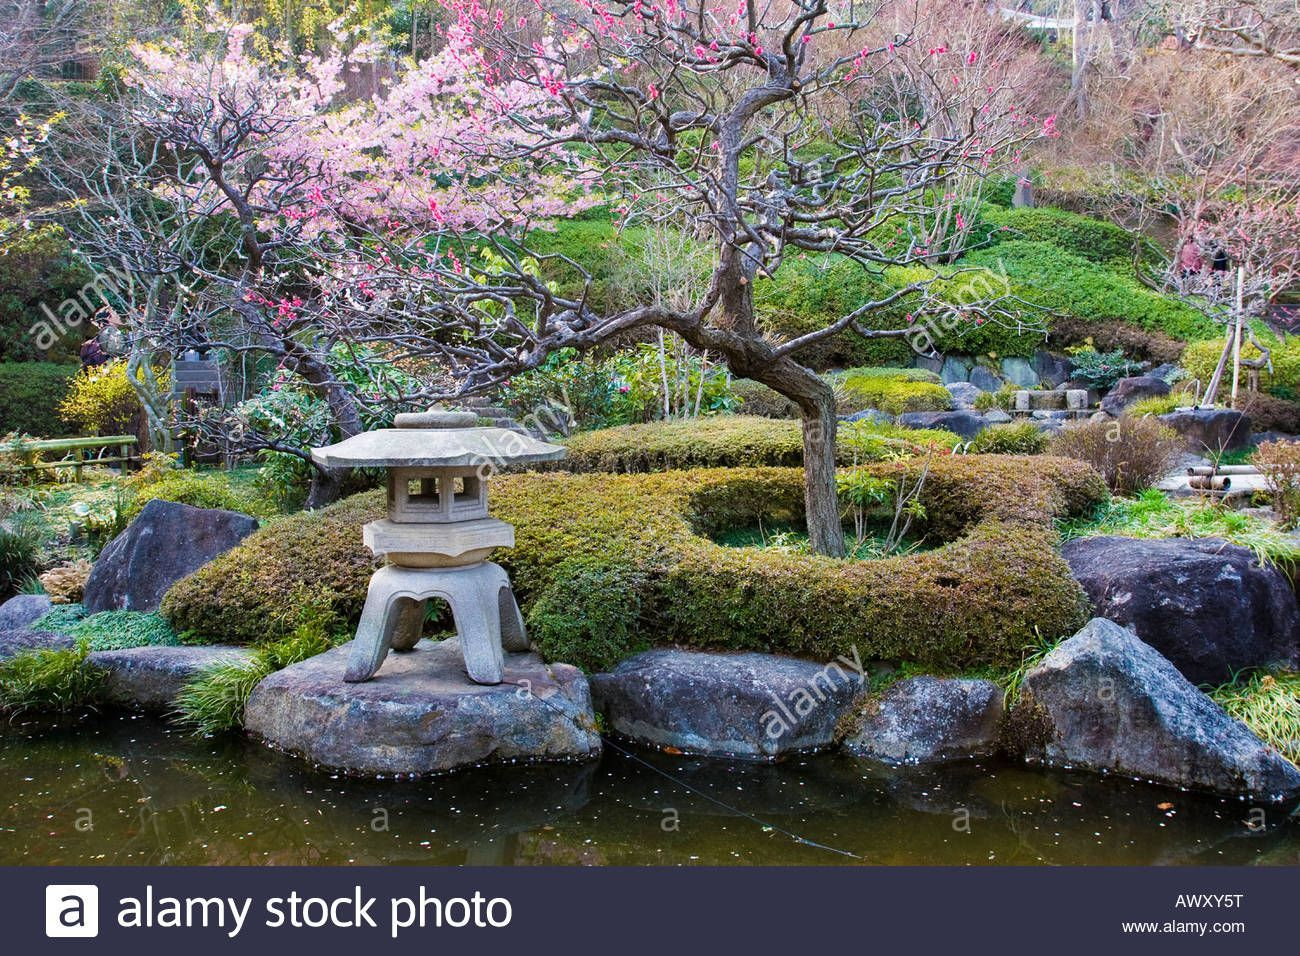 Japanese Garden With Flowering Plum Trees And Stone Lantern In